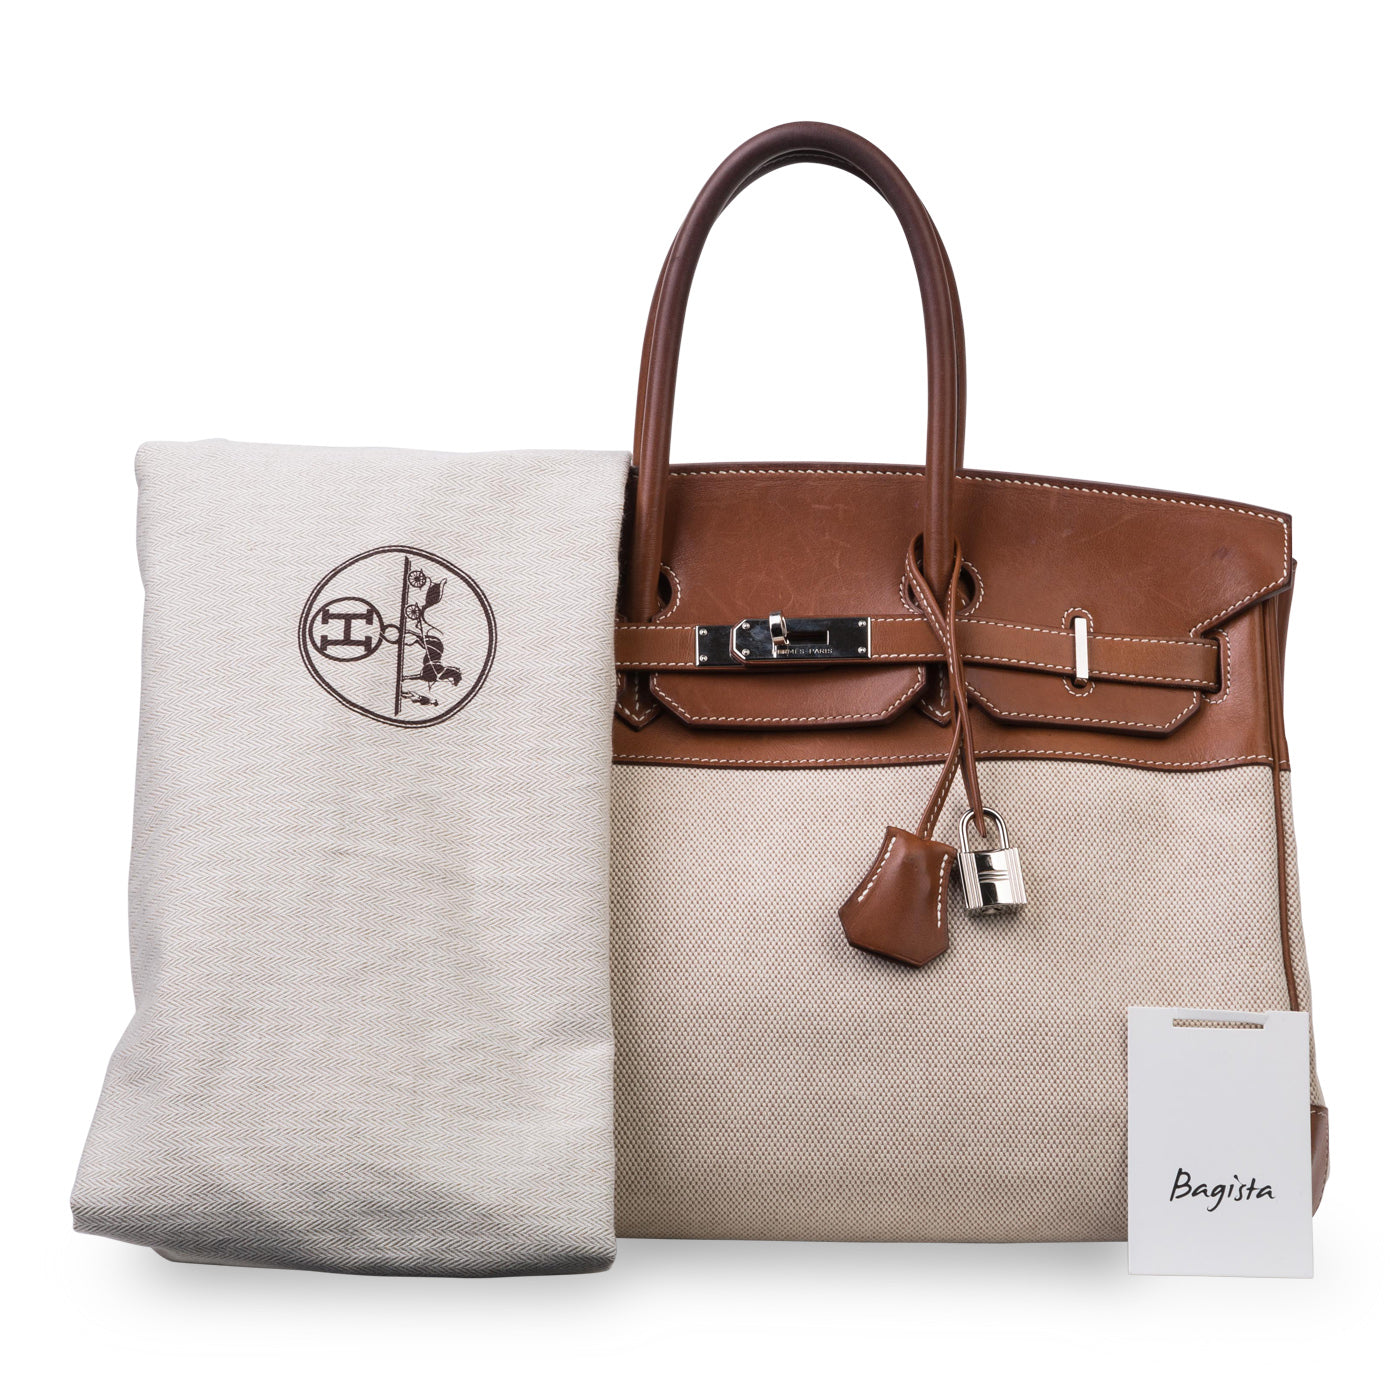 e9c05071a6 Hermès - Birkin 35 - Barenia and Ecru Canvas